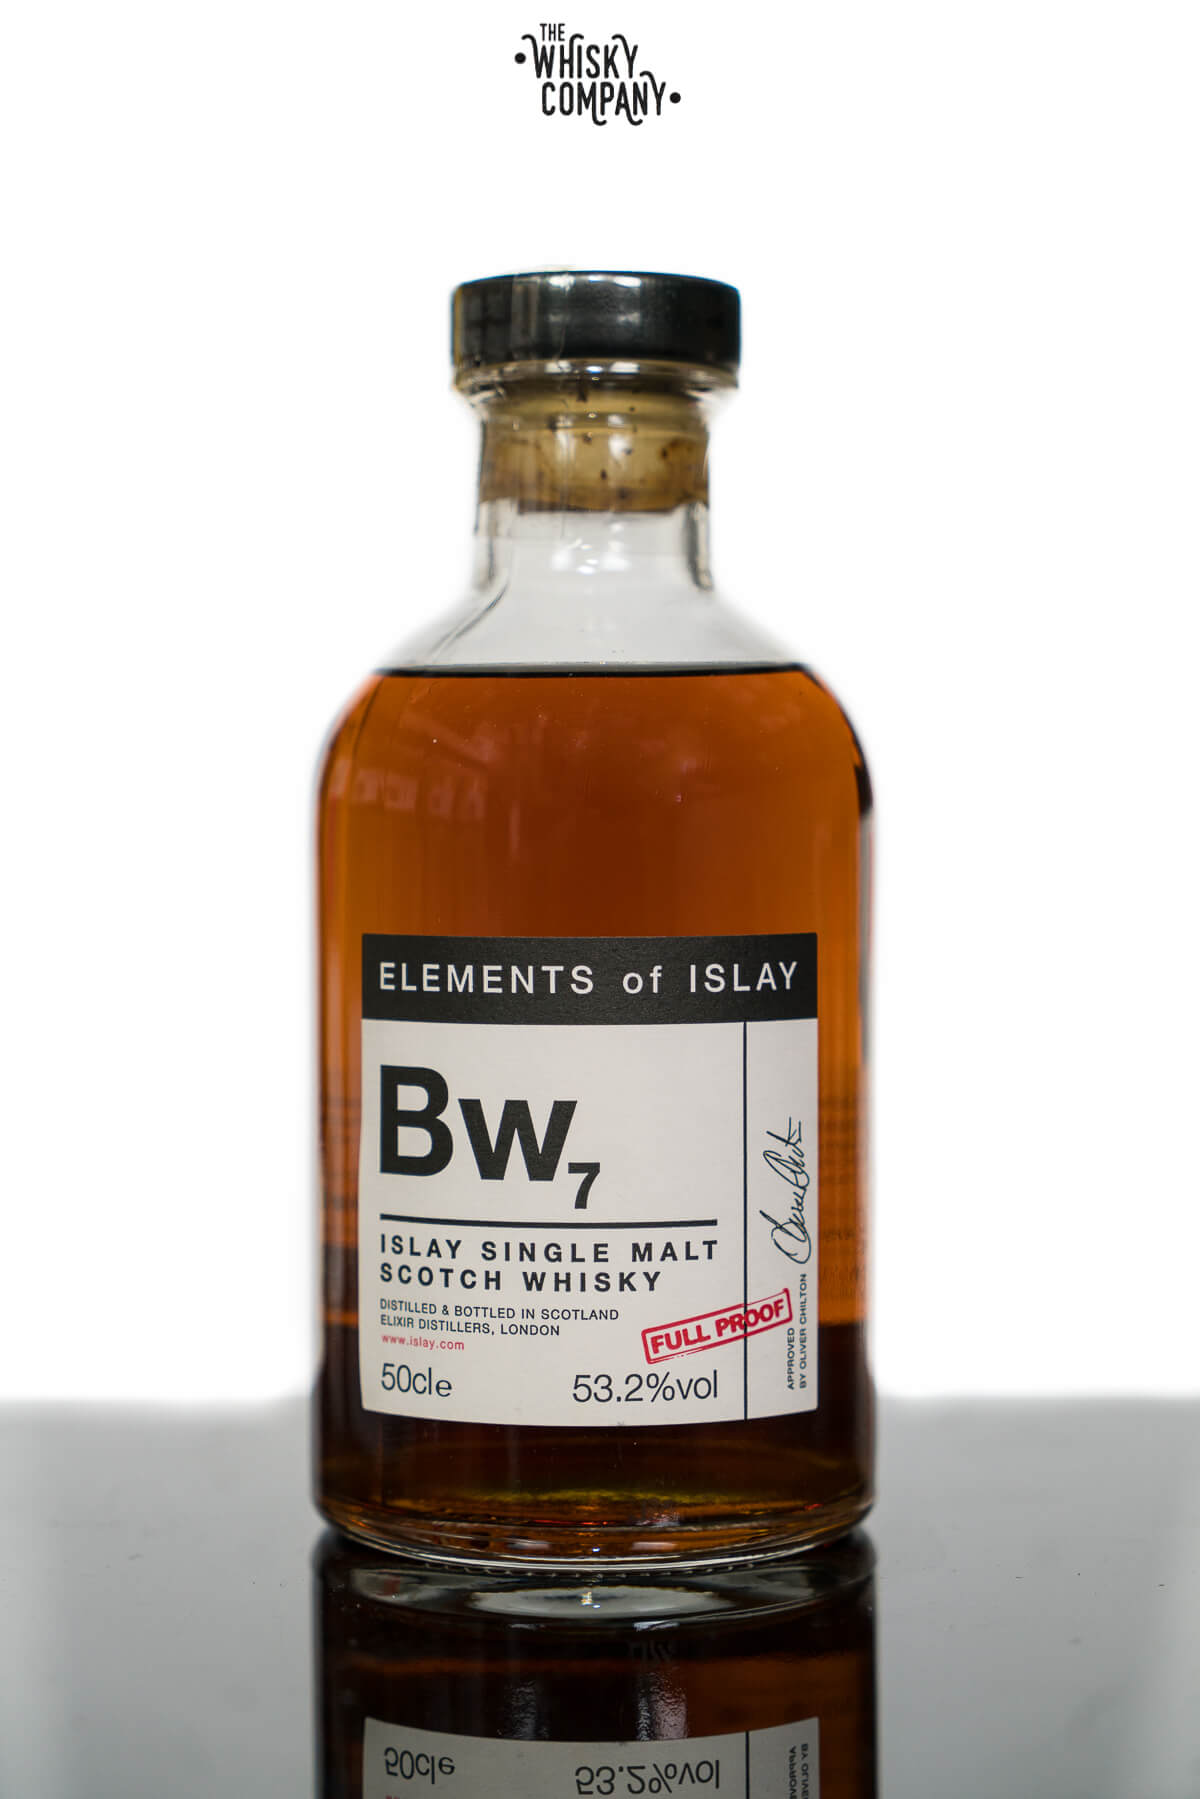 Elements Of Islay Bw7 Islay Single Malt Scotch Whisky (500ml)